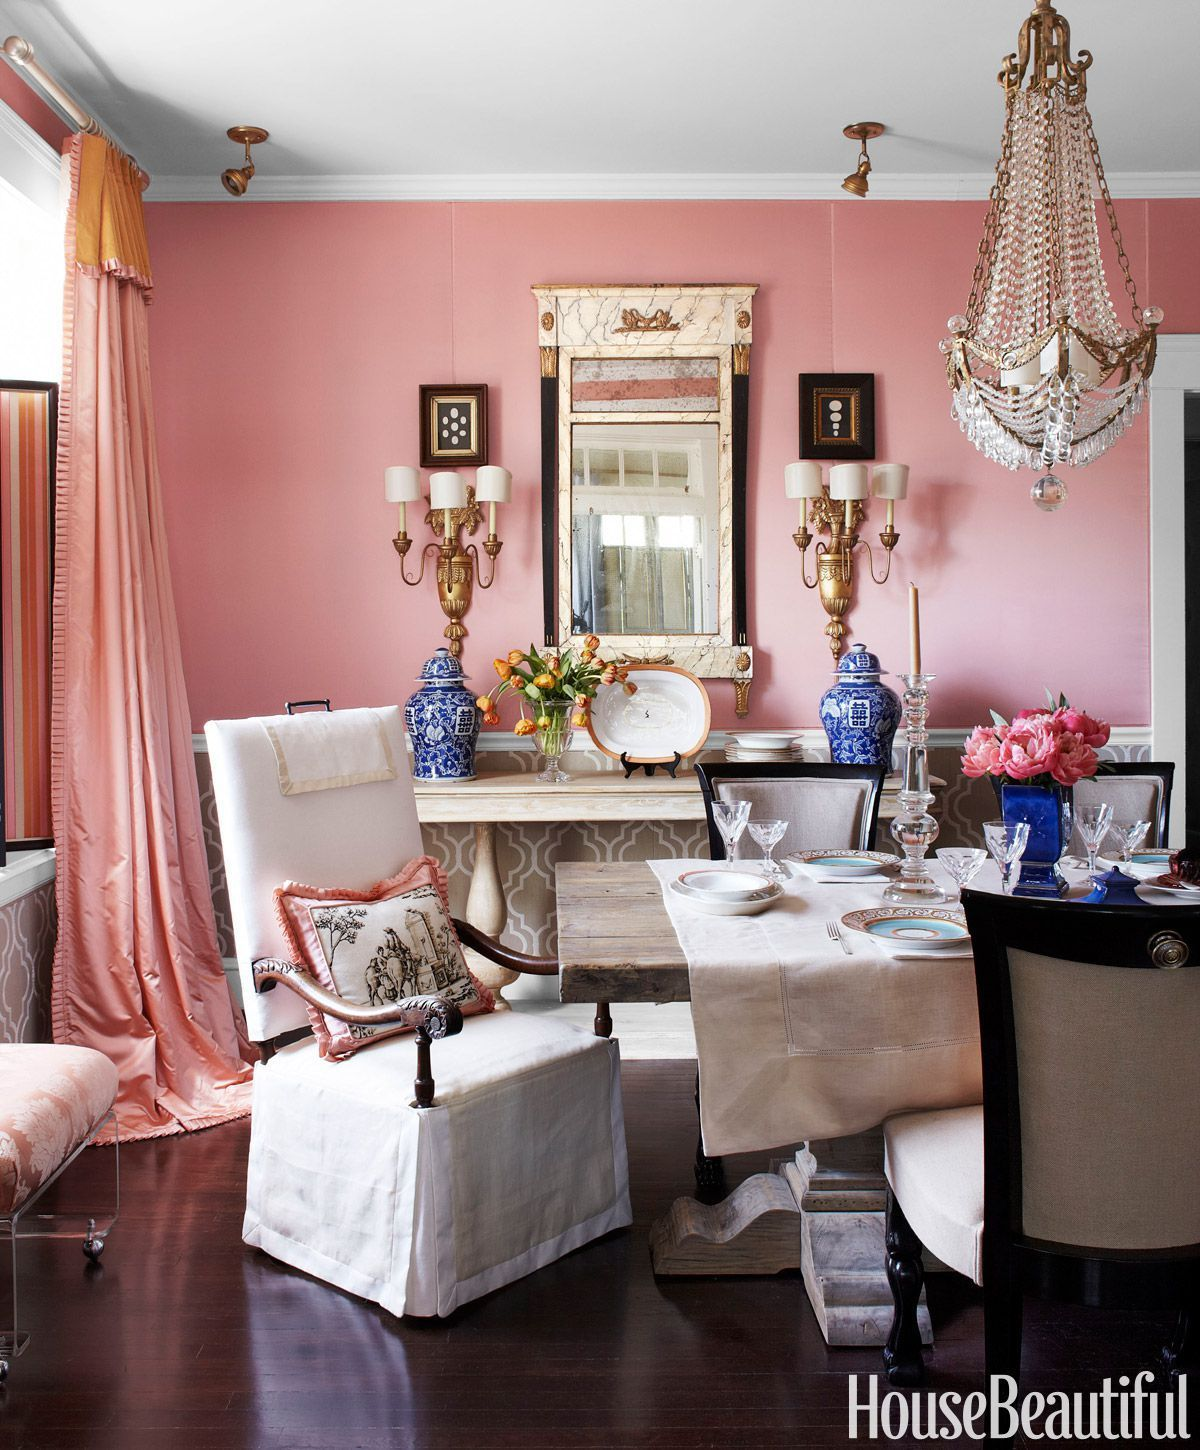 Casual Dining Rooms Decorating Ideas For A Soothing Interior: Calming Paint Colors That Will Instantly Relax You